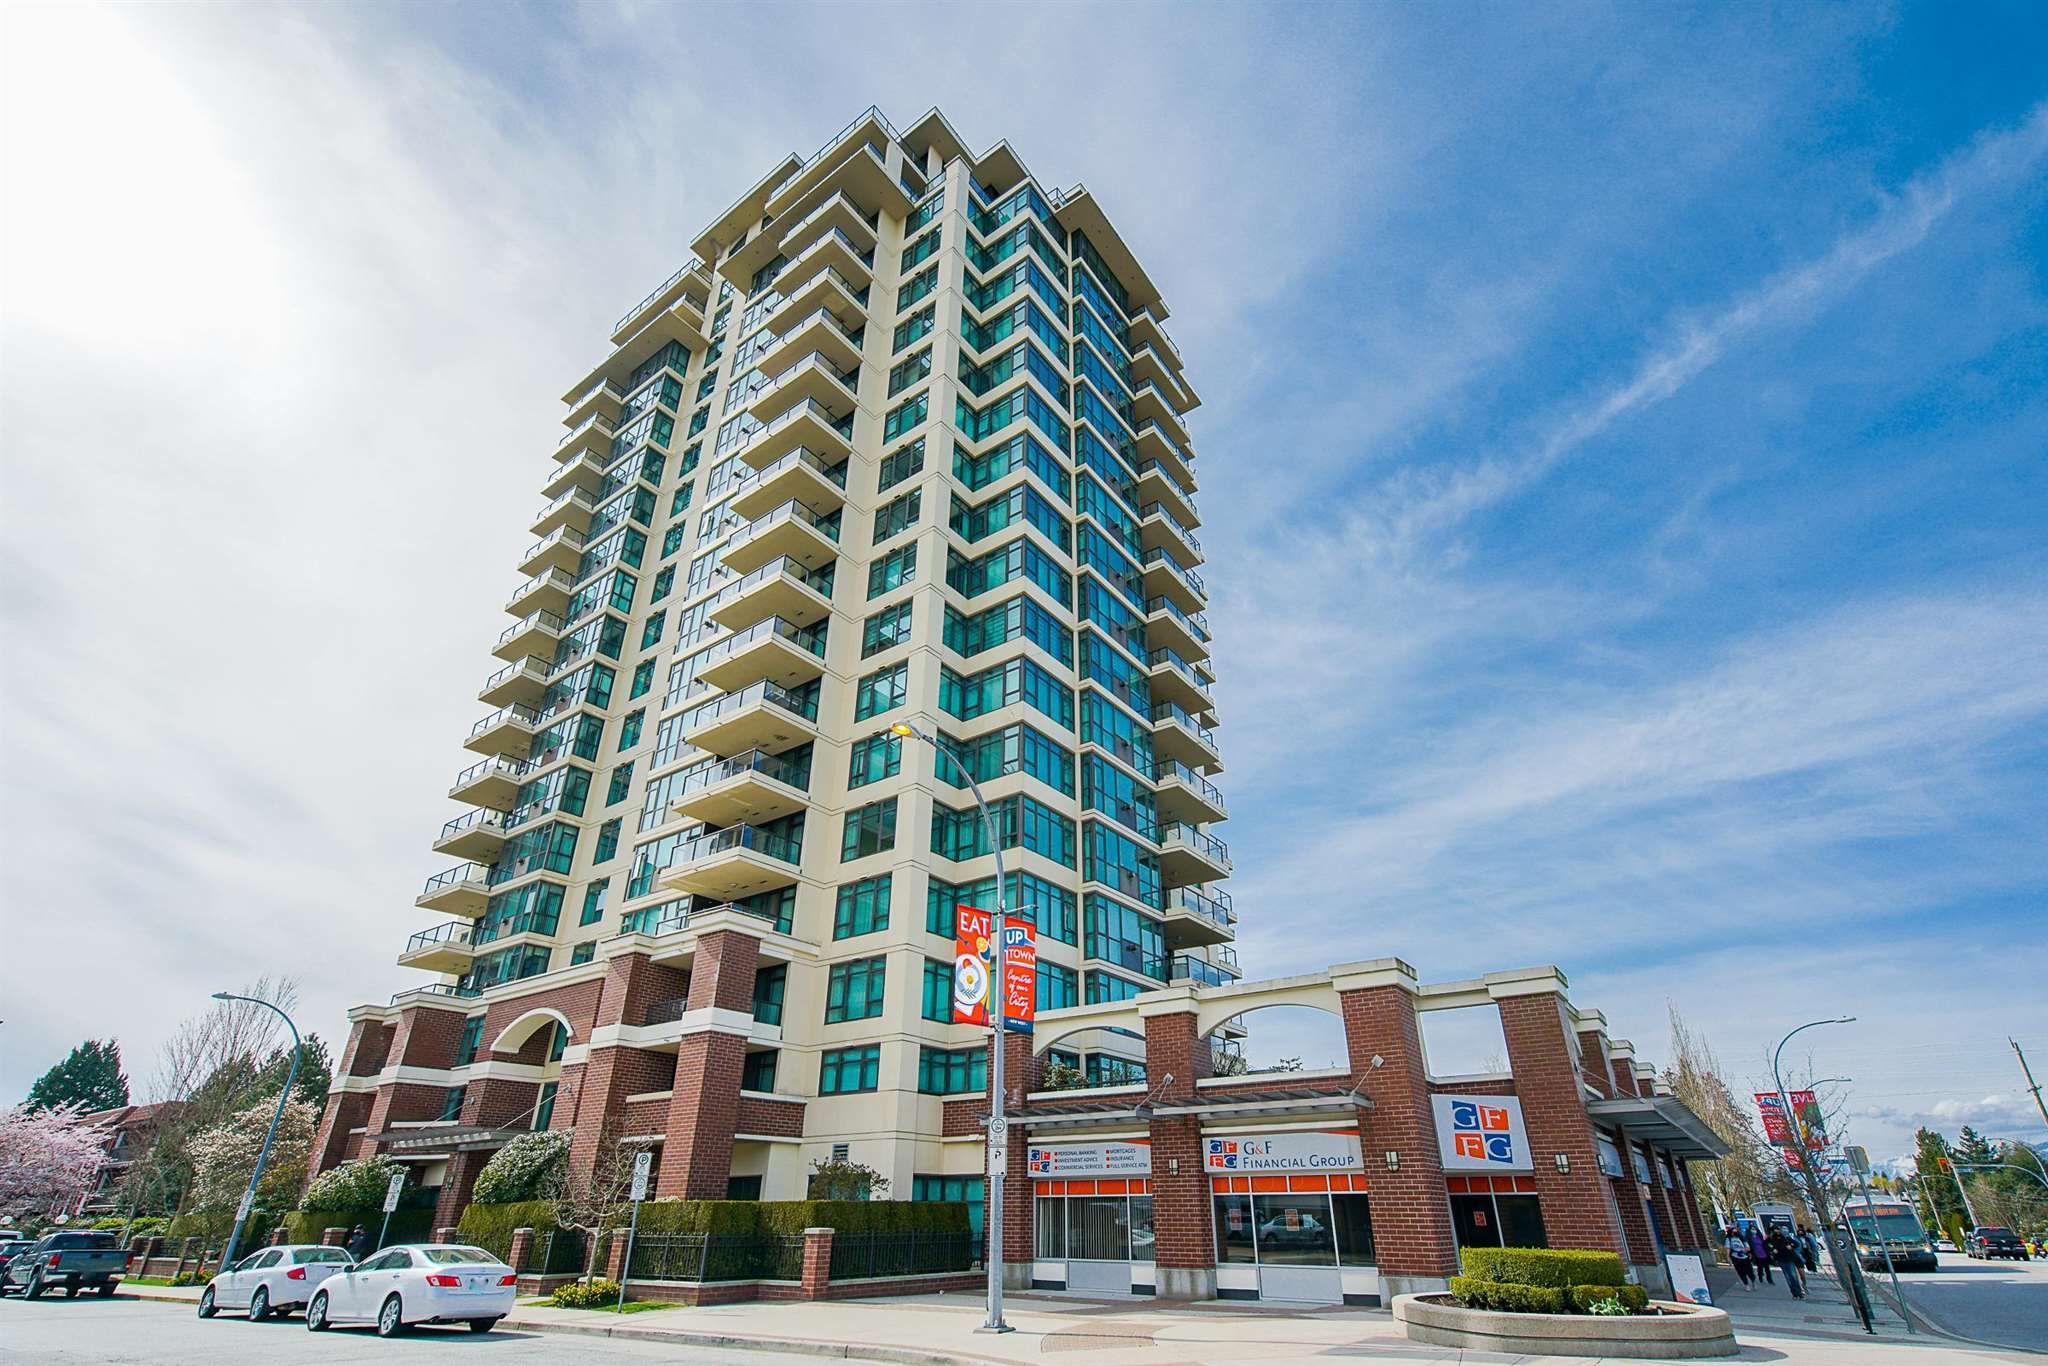 """Main Photo: 1001 615 HAMILTON Street in New Westminster: Uptown NW Condo for sale in """"THE UPTOWN"""" : MLS®# R2603448"""